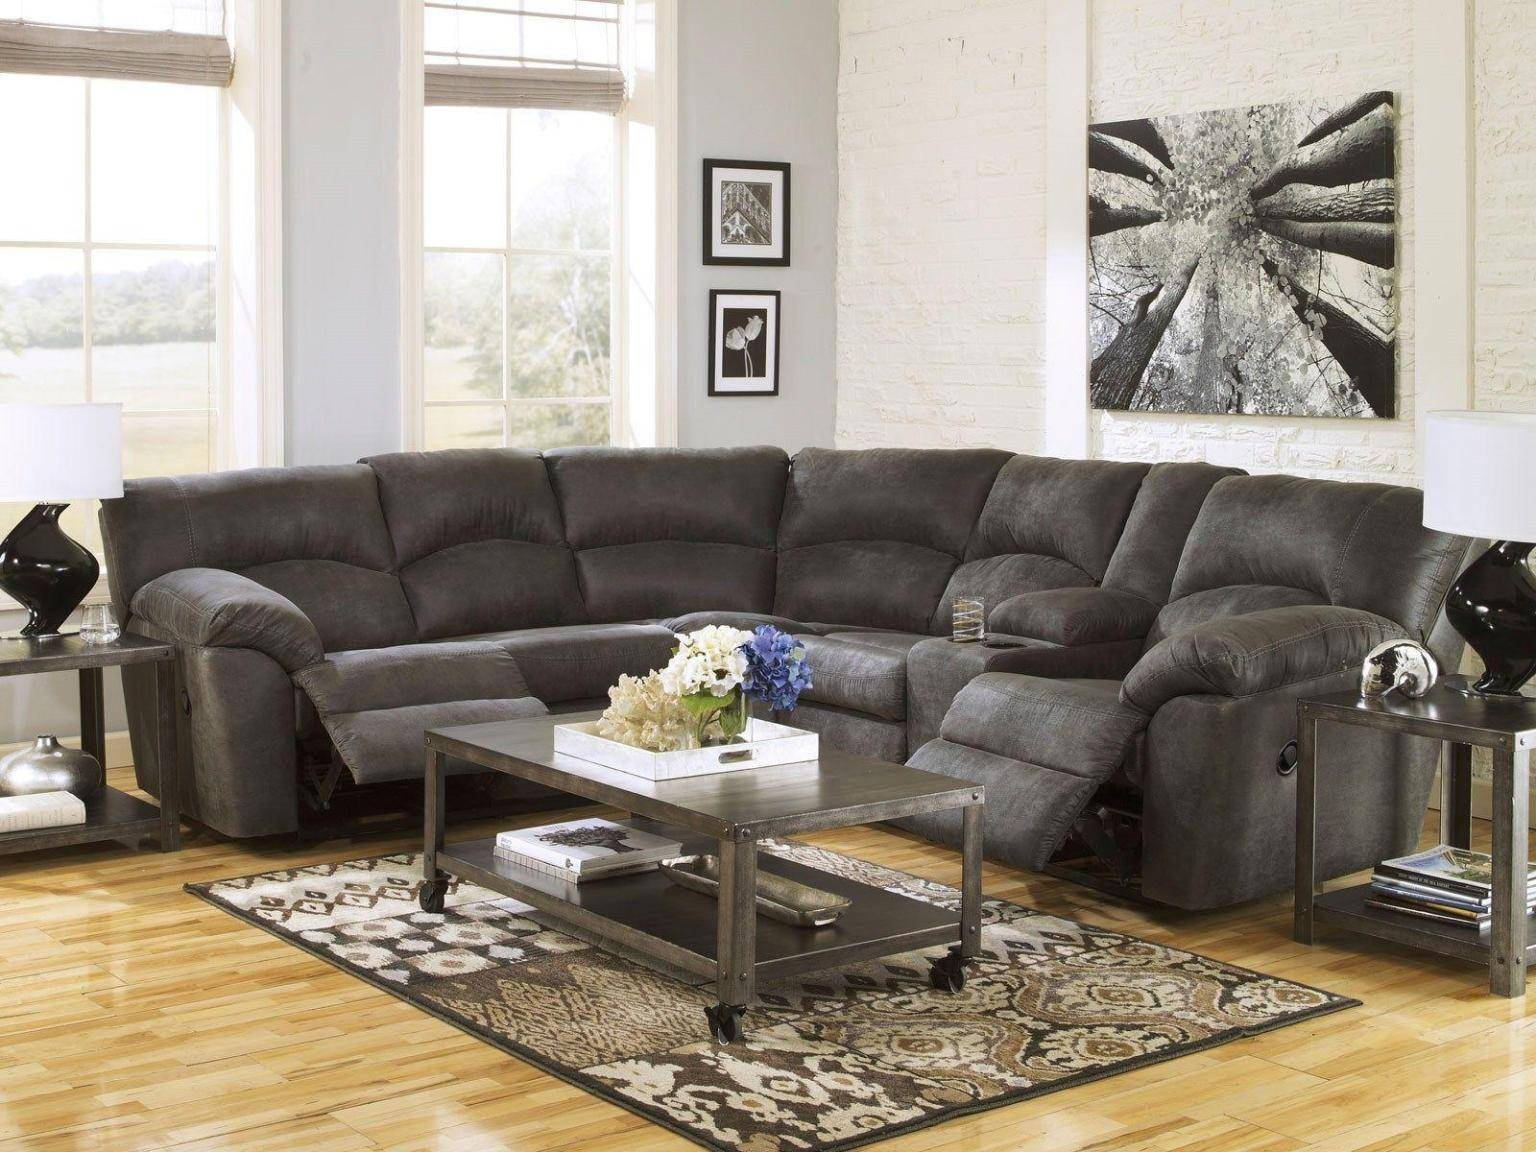 Best Design Sectional Sofas With Recliners With Regard To Sectional Sofas For Small Spaces With Recliners (View 1 of 30)